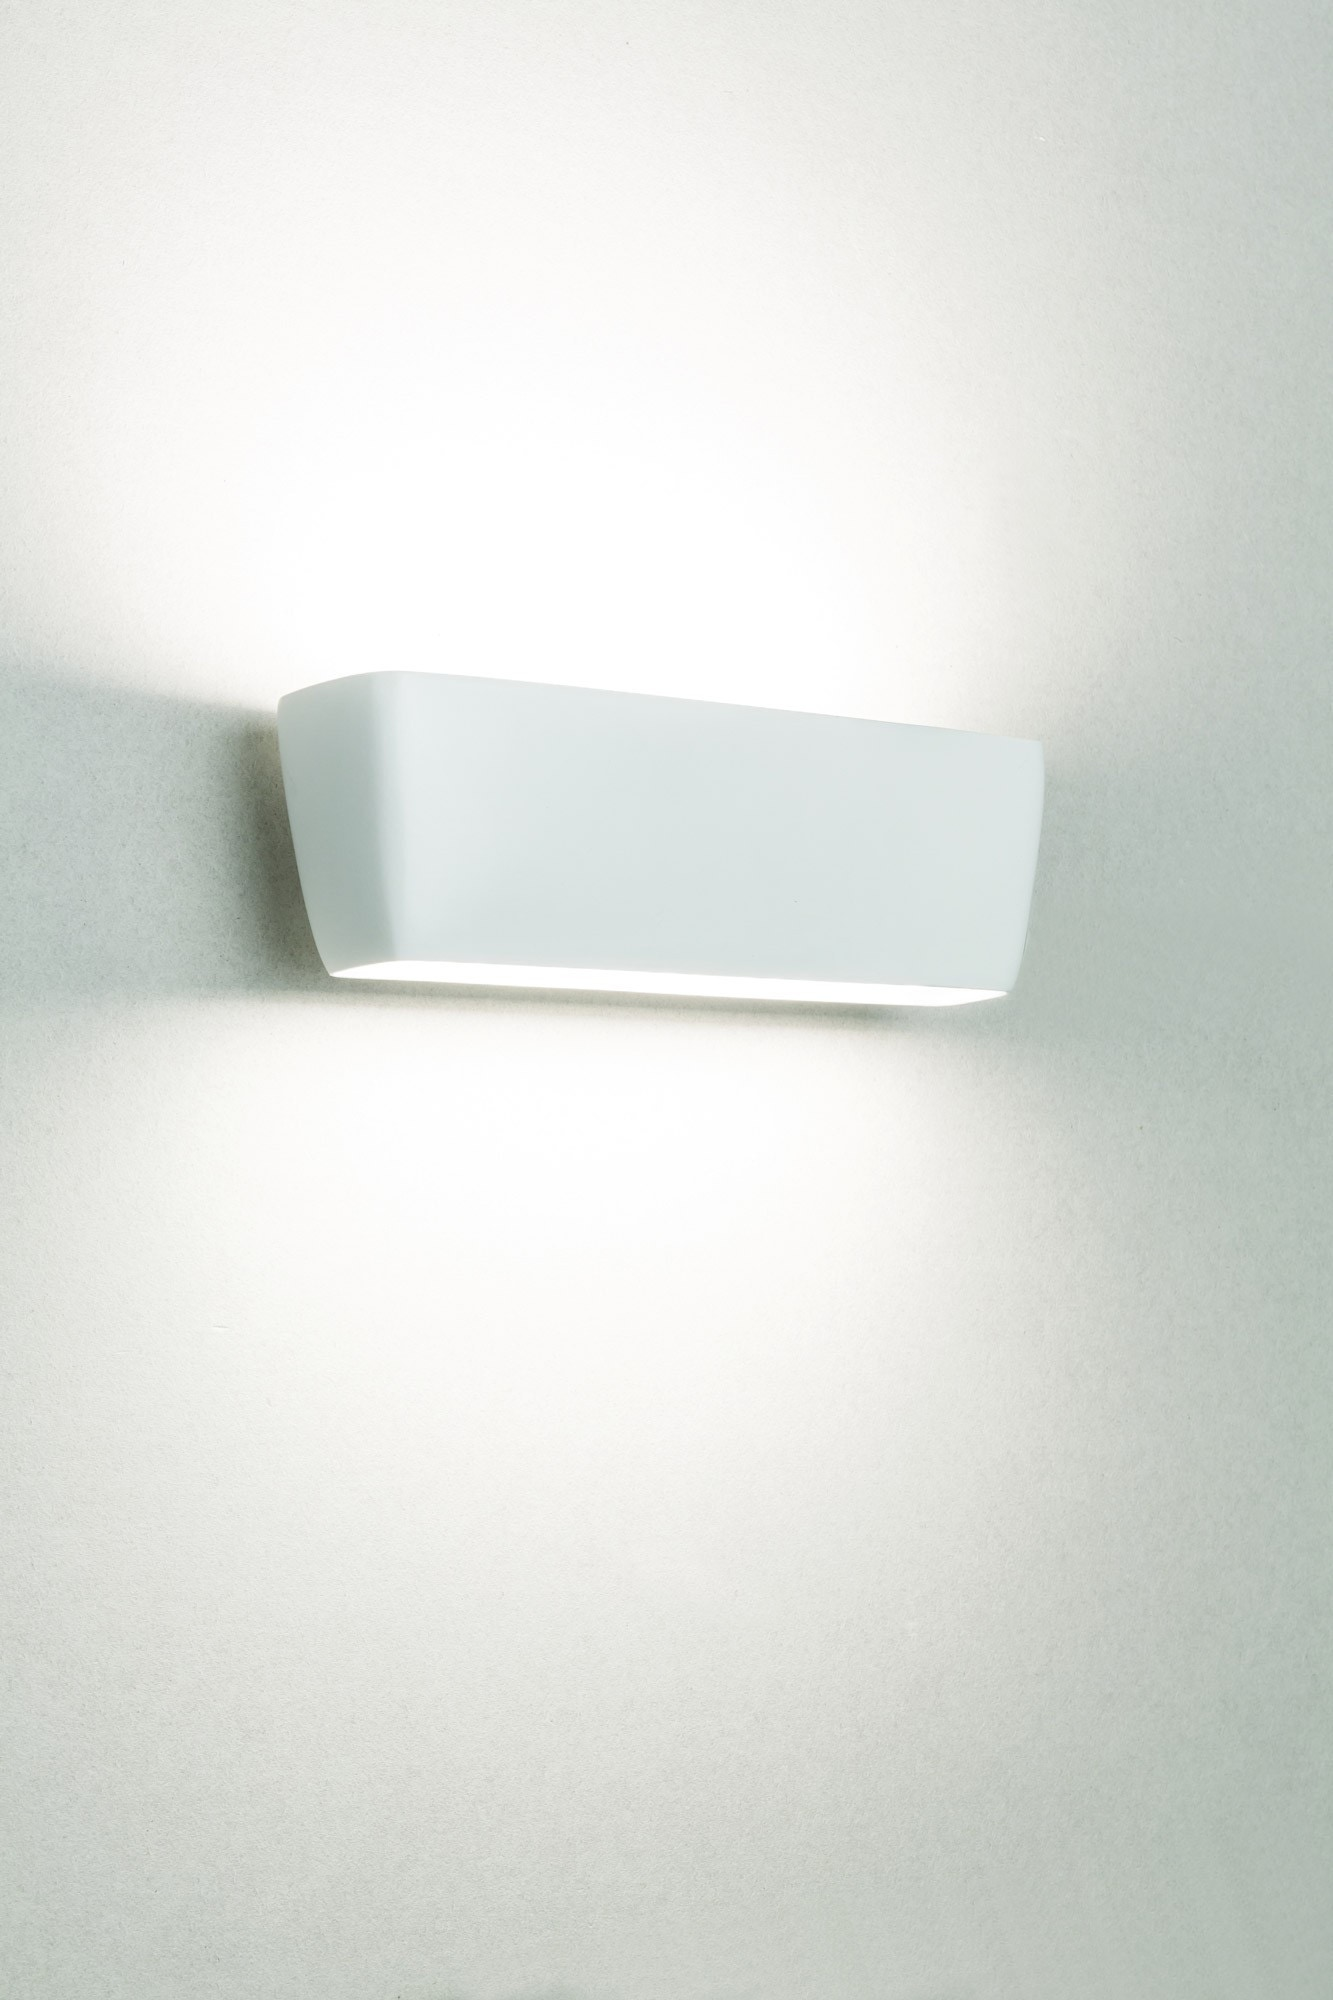 Nemo Italianaluce Flaca Wall Lamp